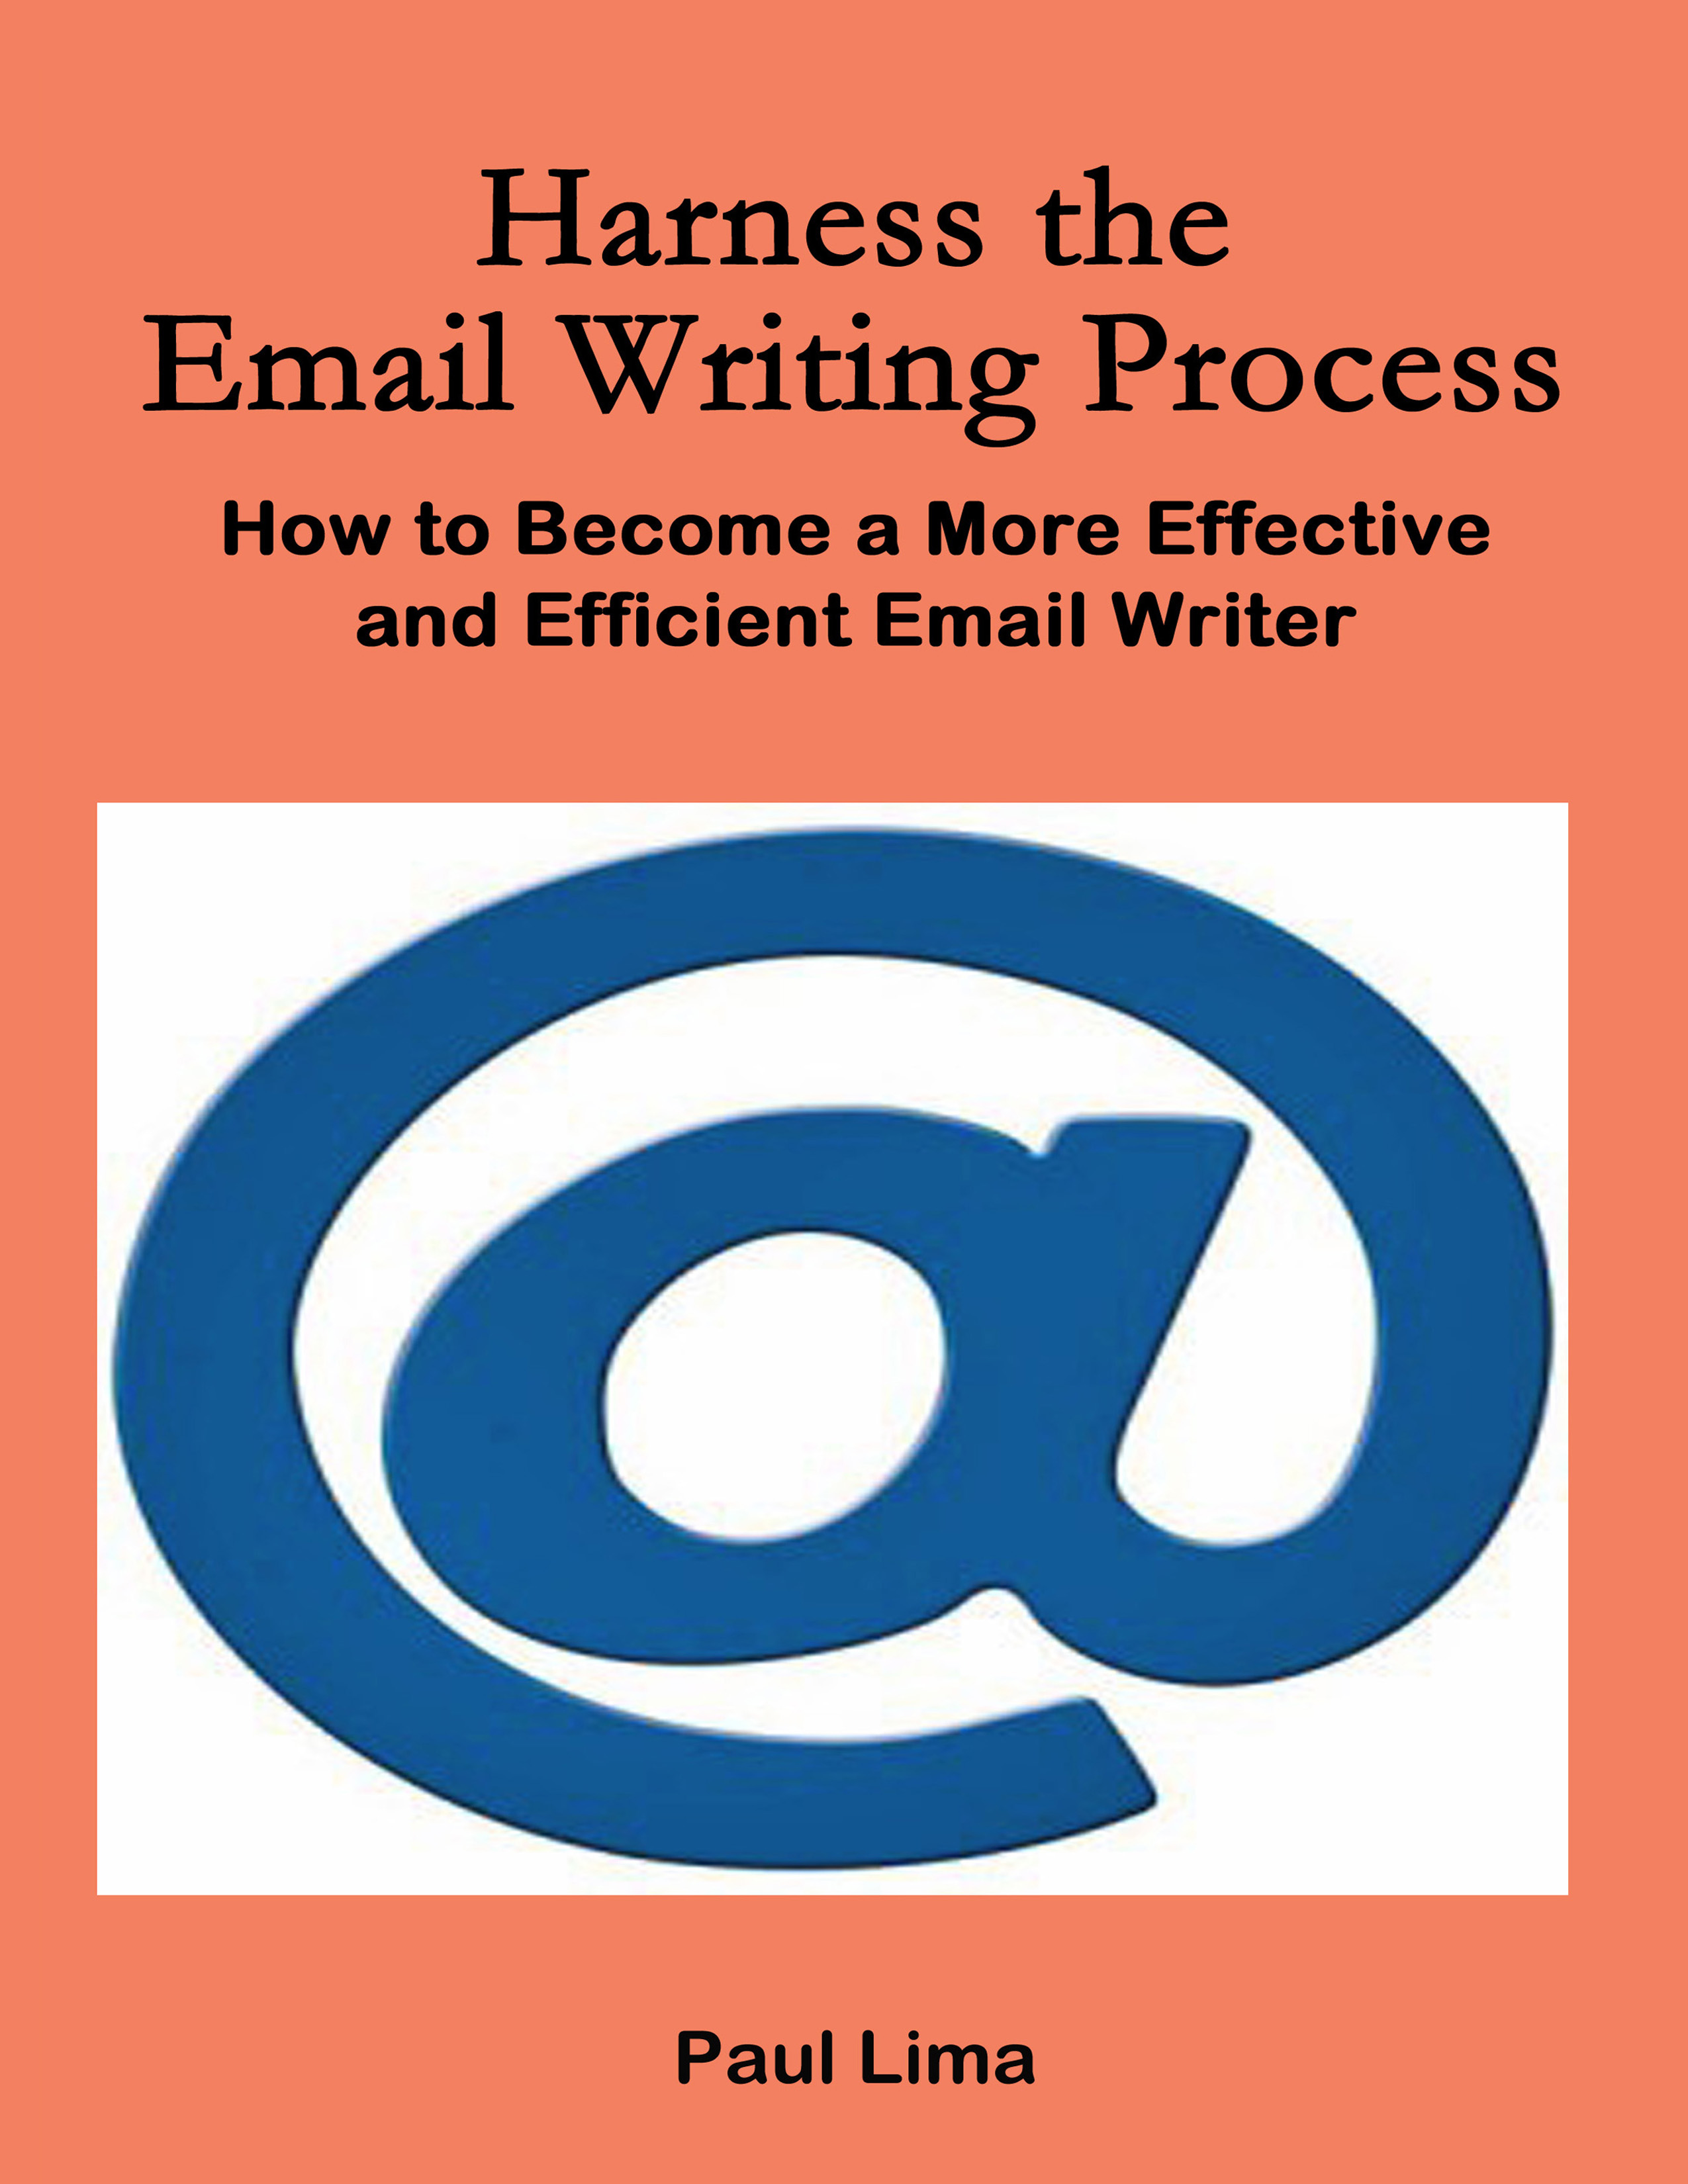 Harness the Email Writing Process